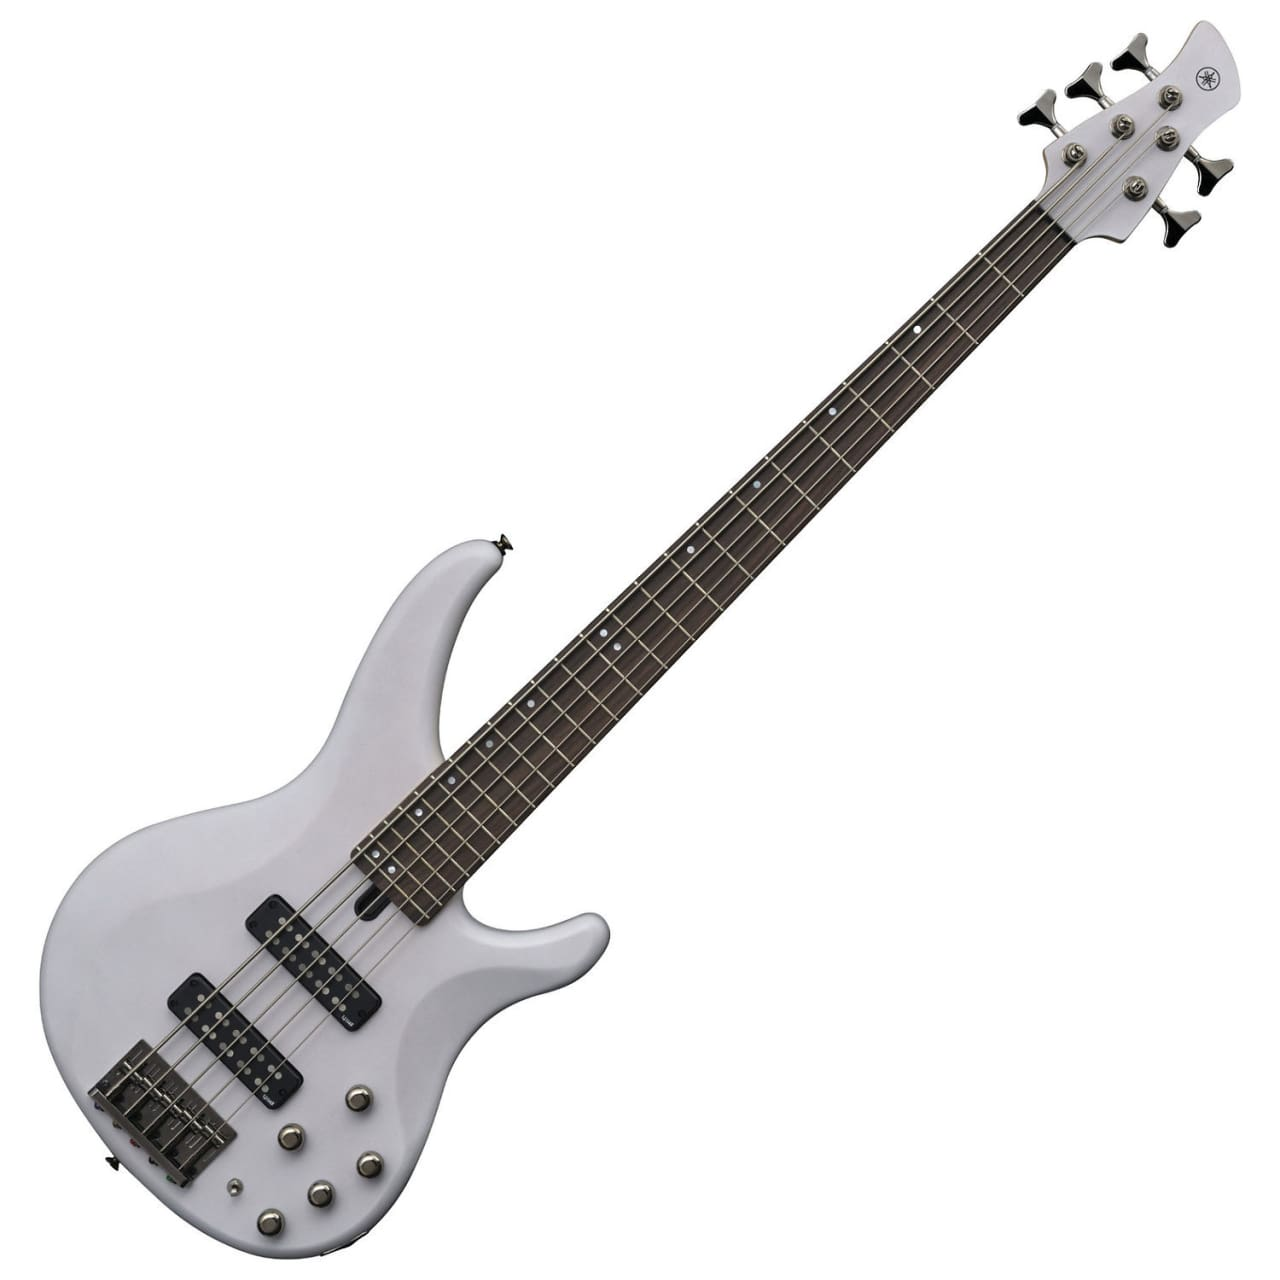 yamaha trbx505 5 string bass guitar with active pickups reverb. Black Bedroom Furniture Sets. Home Design Ideas